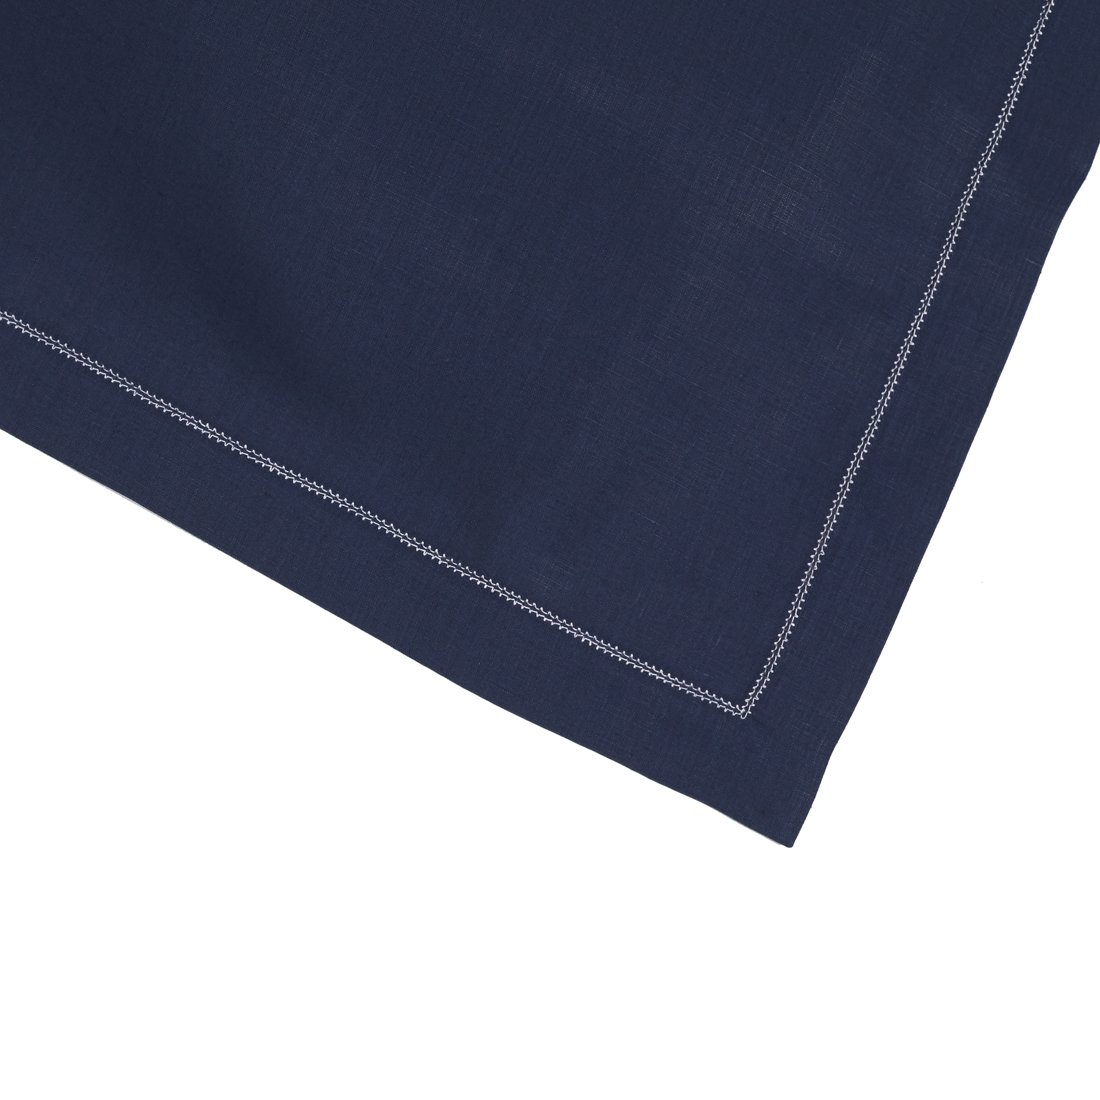 Navy Blue Pure Linen Placemat With Ivory Contrast Hemstitch (Set of Six) by Huddleson Linens (Image #2)